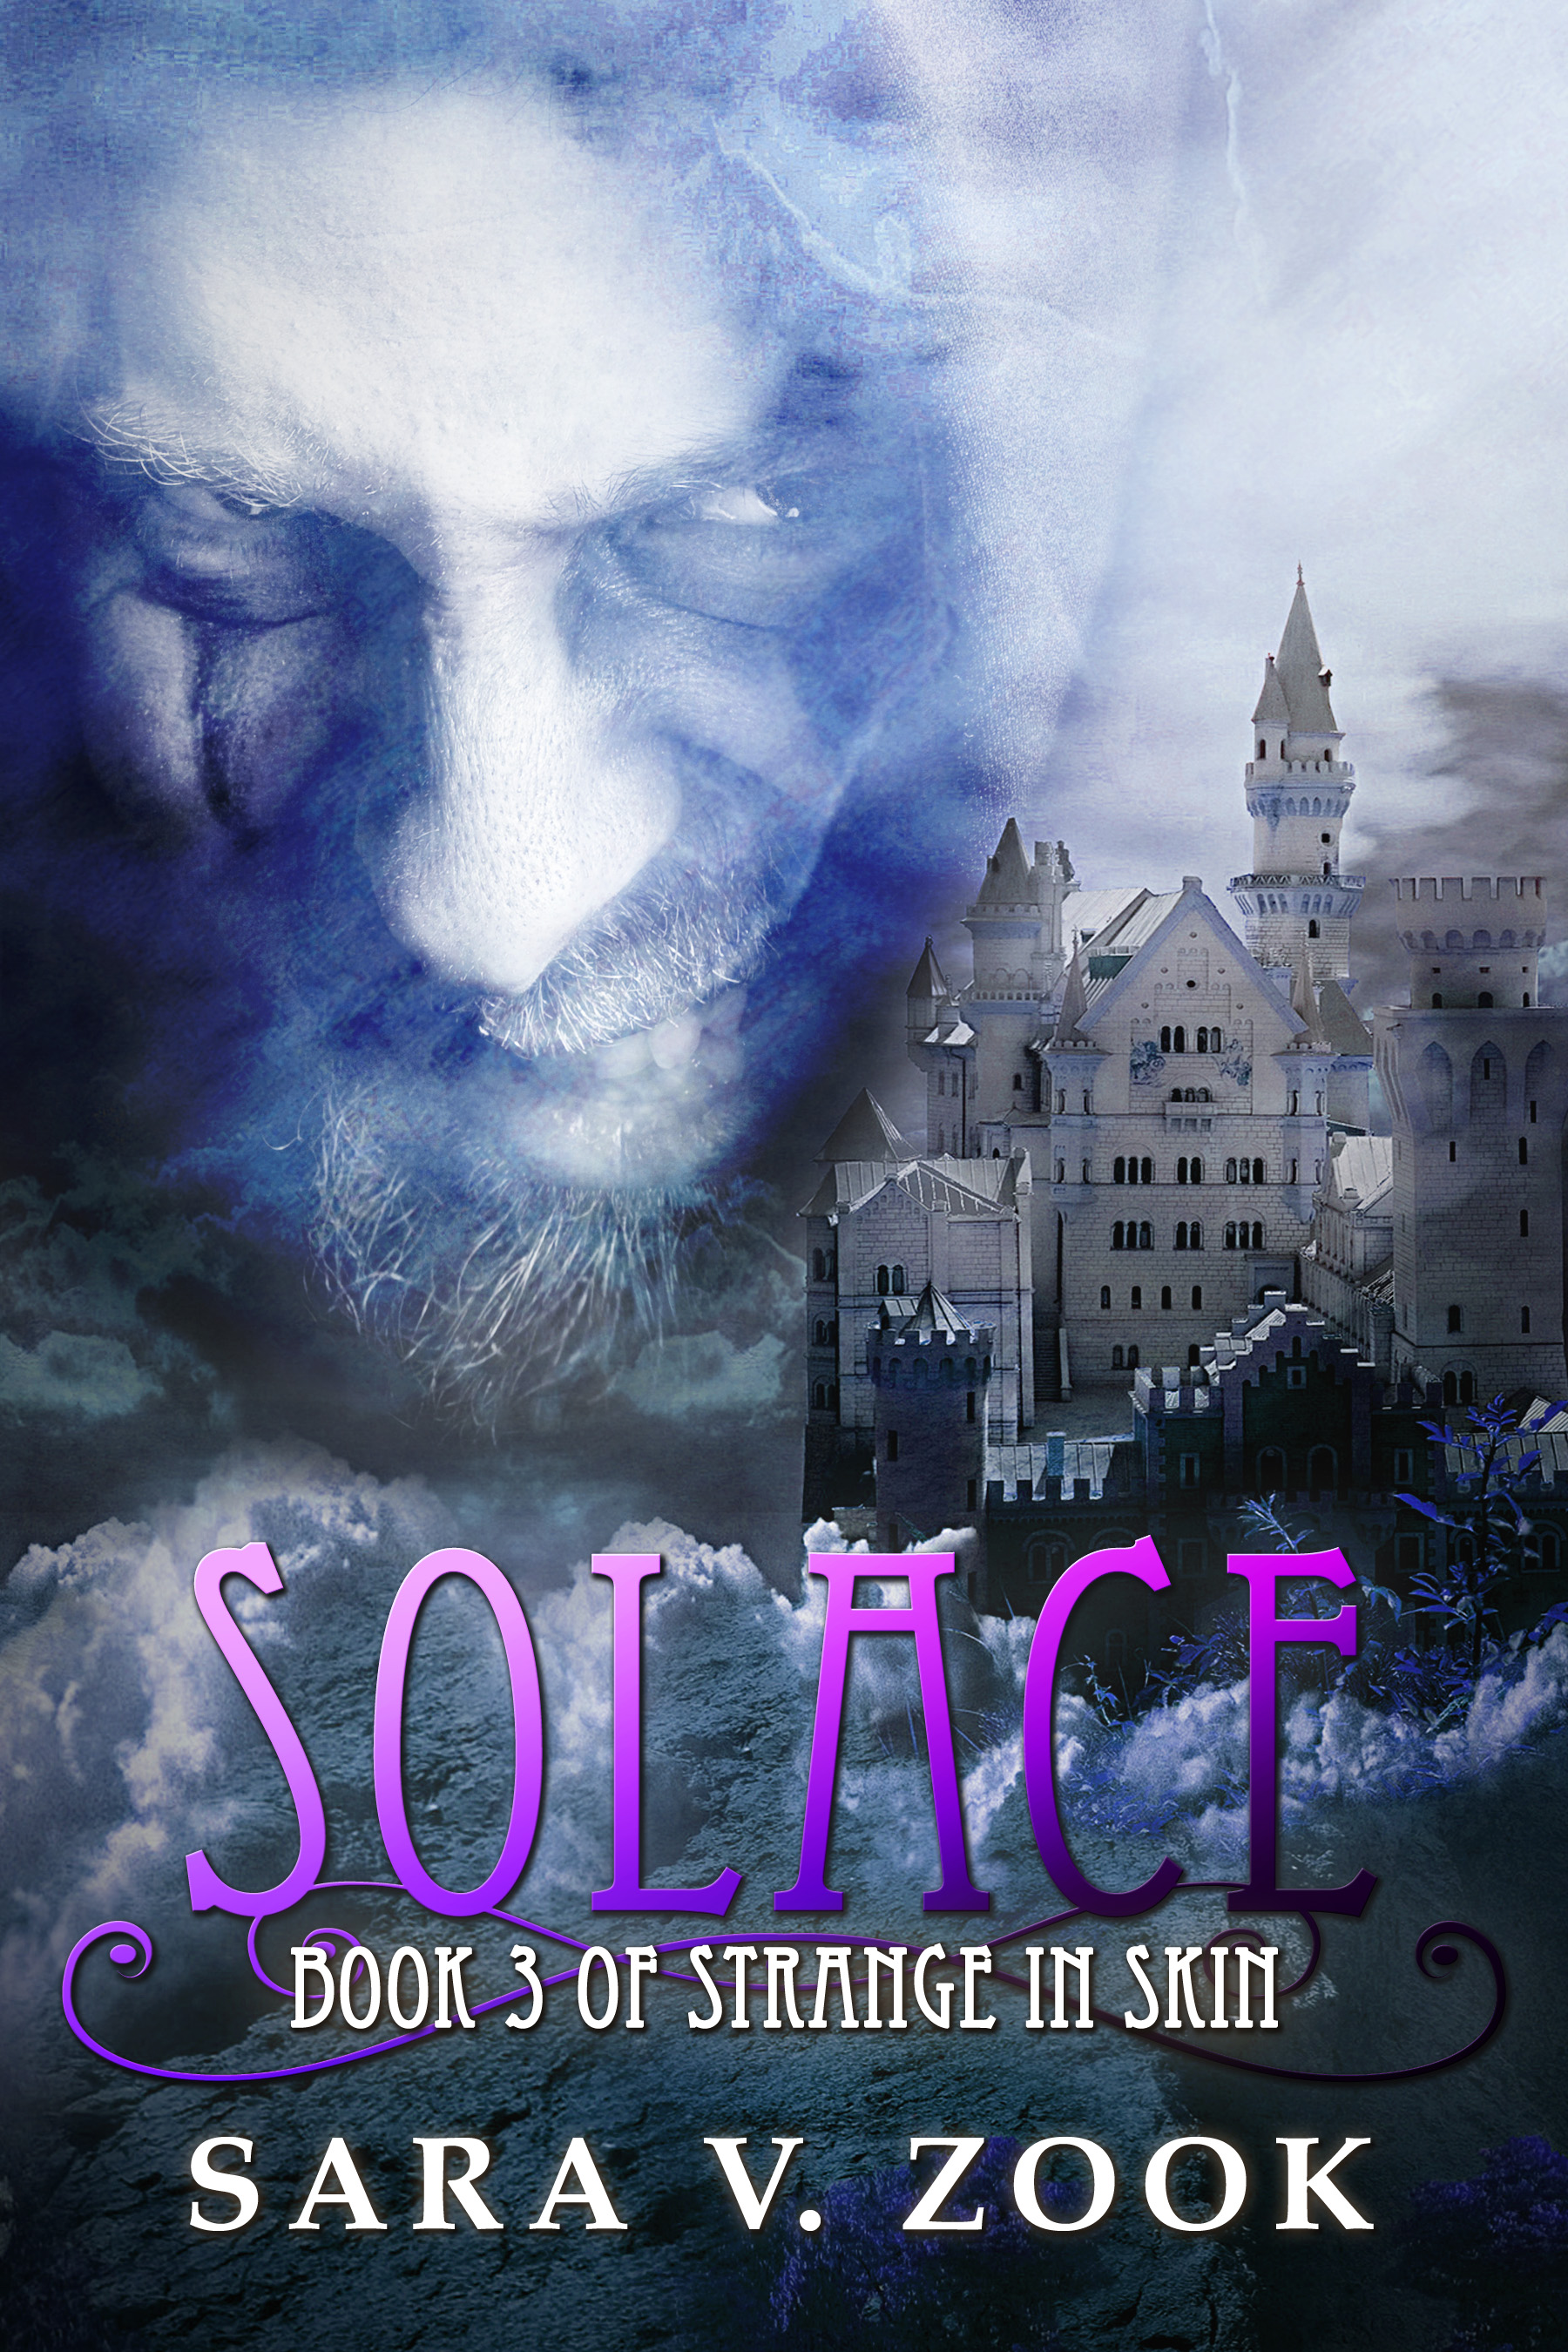 Solace - Book 3, by Sara V. Zook